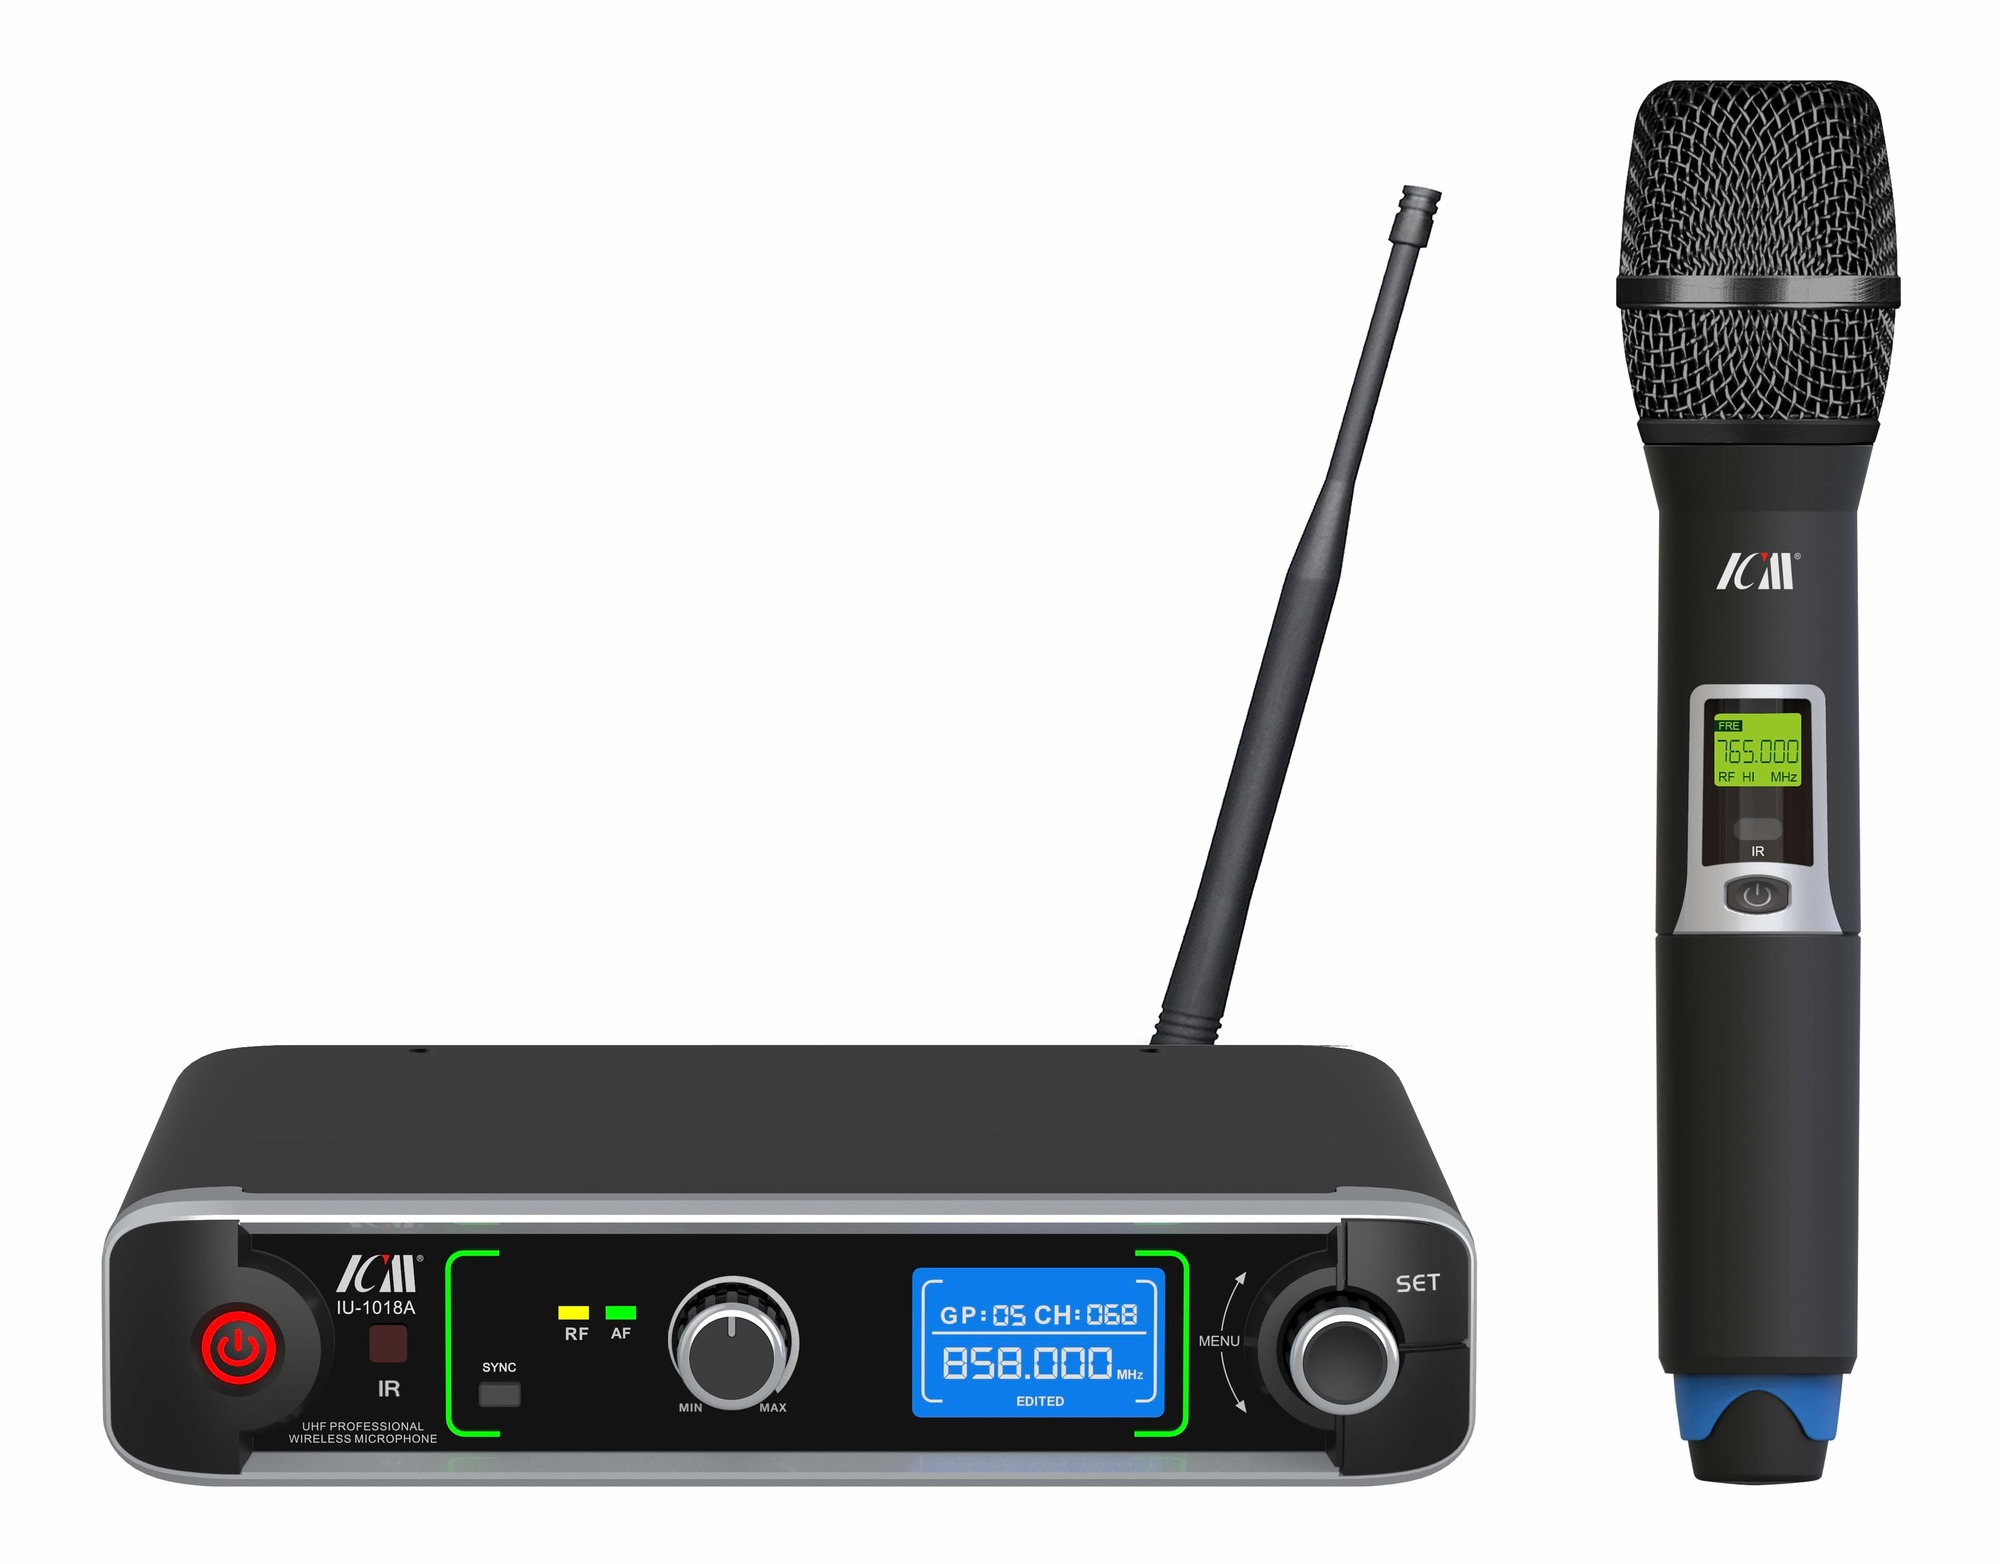 ICM IU-1018A Single Channel Wireless Microphone System - 1 Handheld Mic